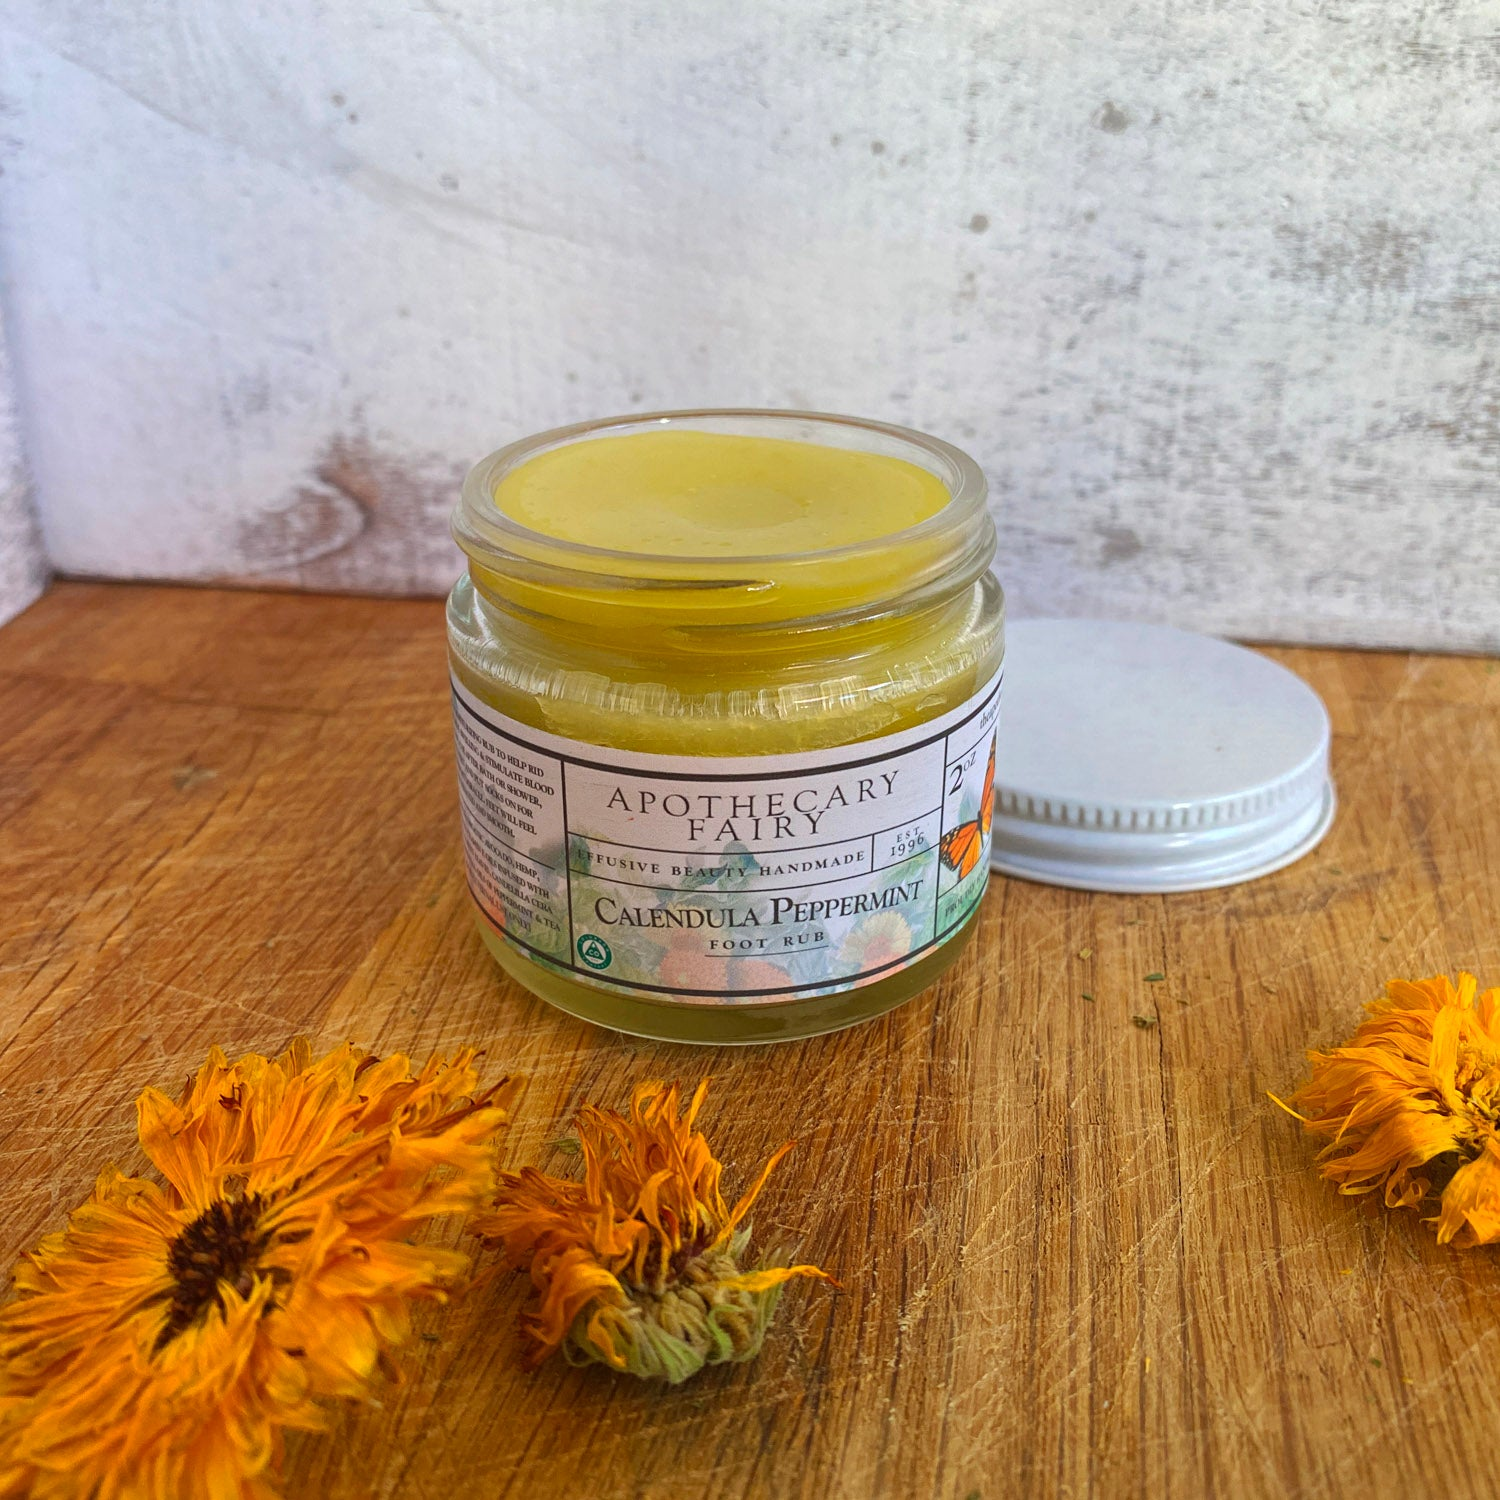 Calendula Peppermint Foot Rub - The Apothecary Fairy